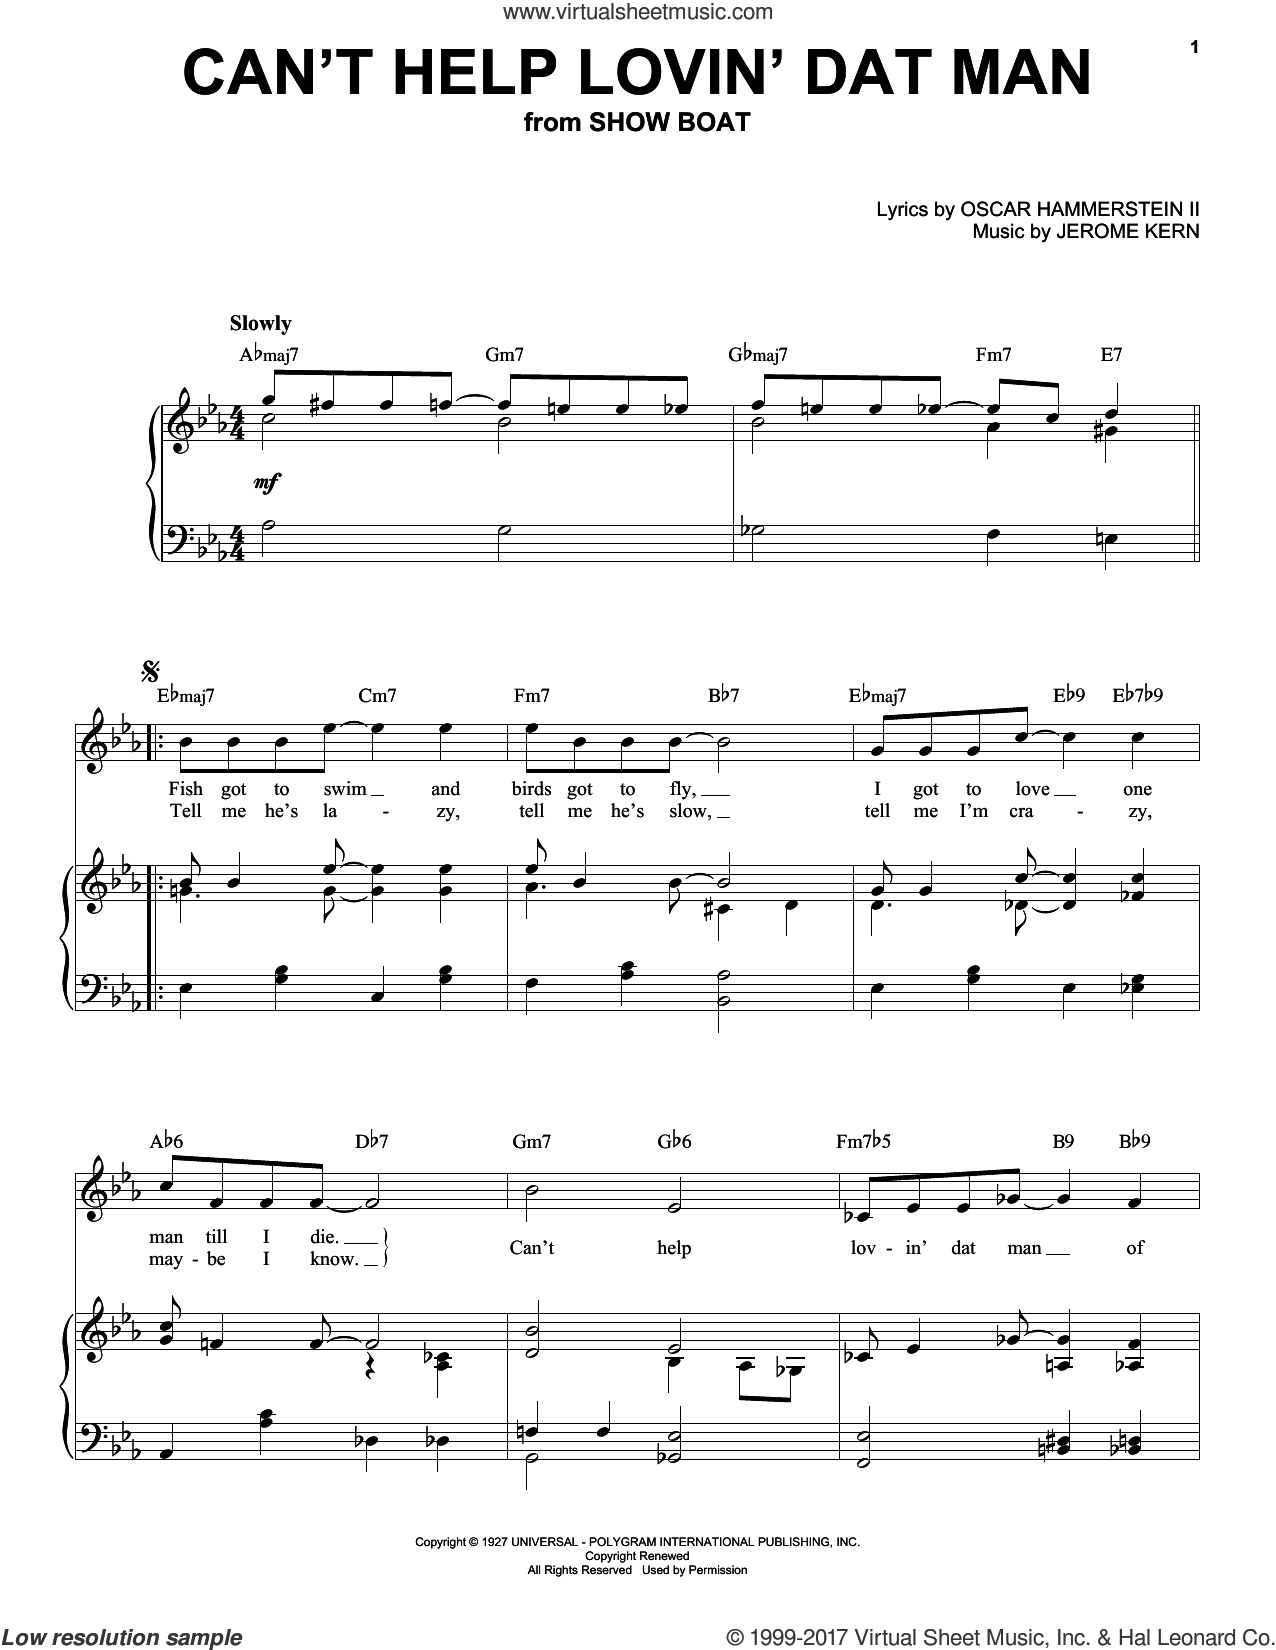 Can't Help Lovin' Dat Man sheet music for voice and piano (High ) by Jerome Kern and Helen Morgan, intermediate. Score Image Preview.